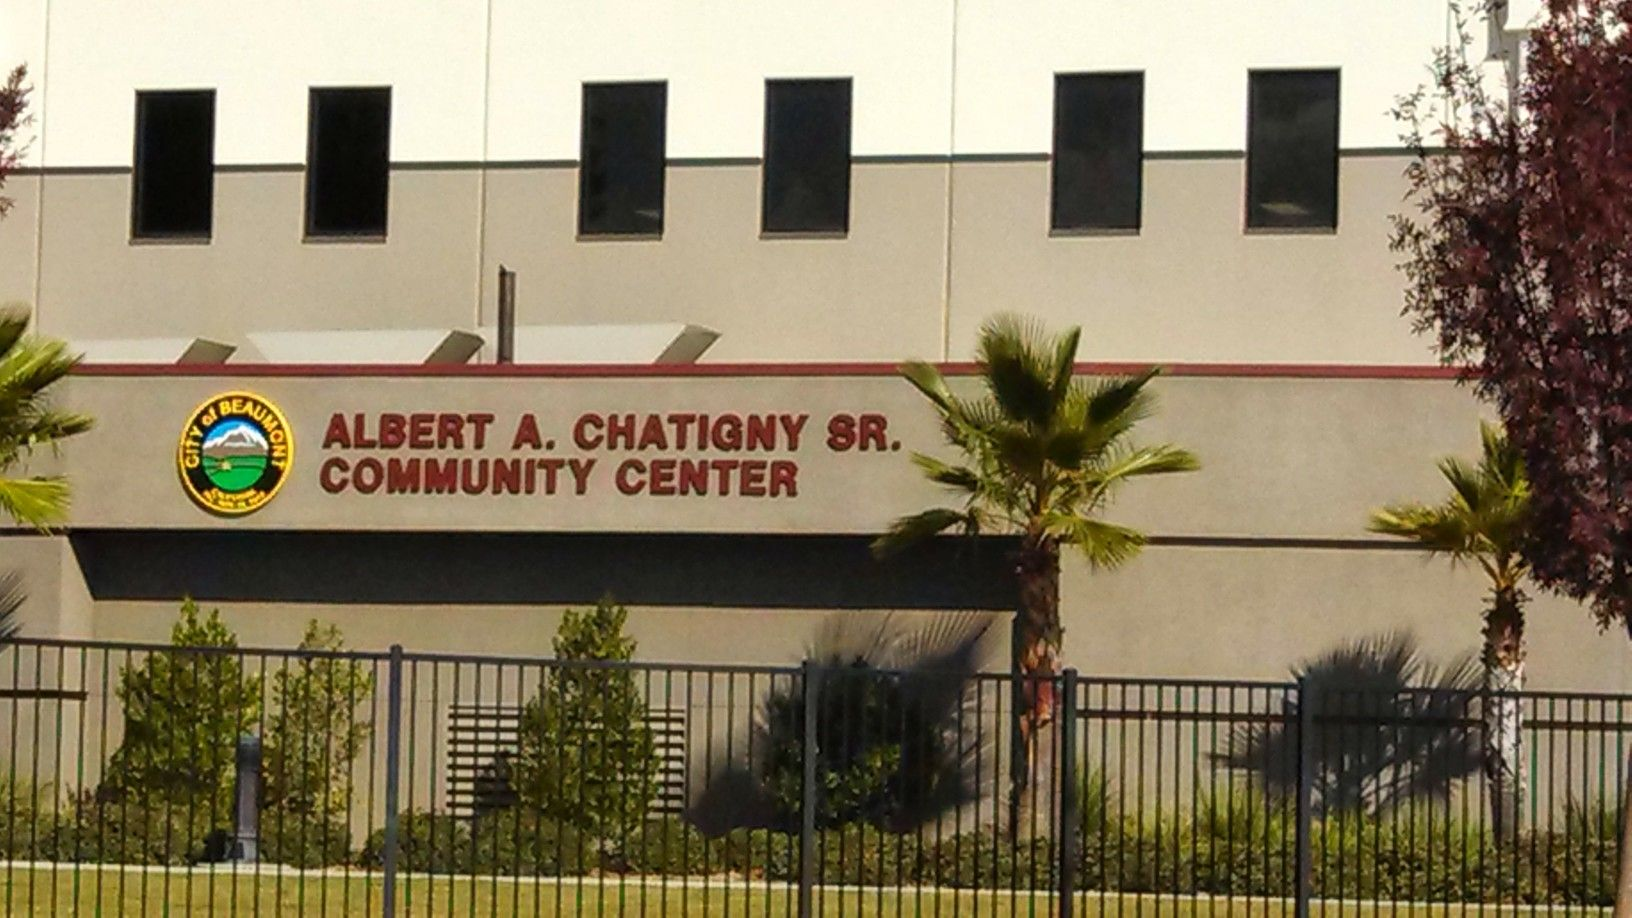 Albert A Chatigny Sr Community Center In Beaumont California This Is Near The Sundance Community Beaumont California Sale House